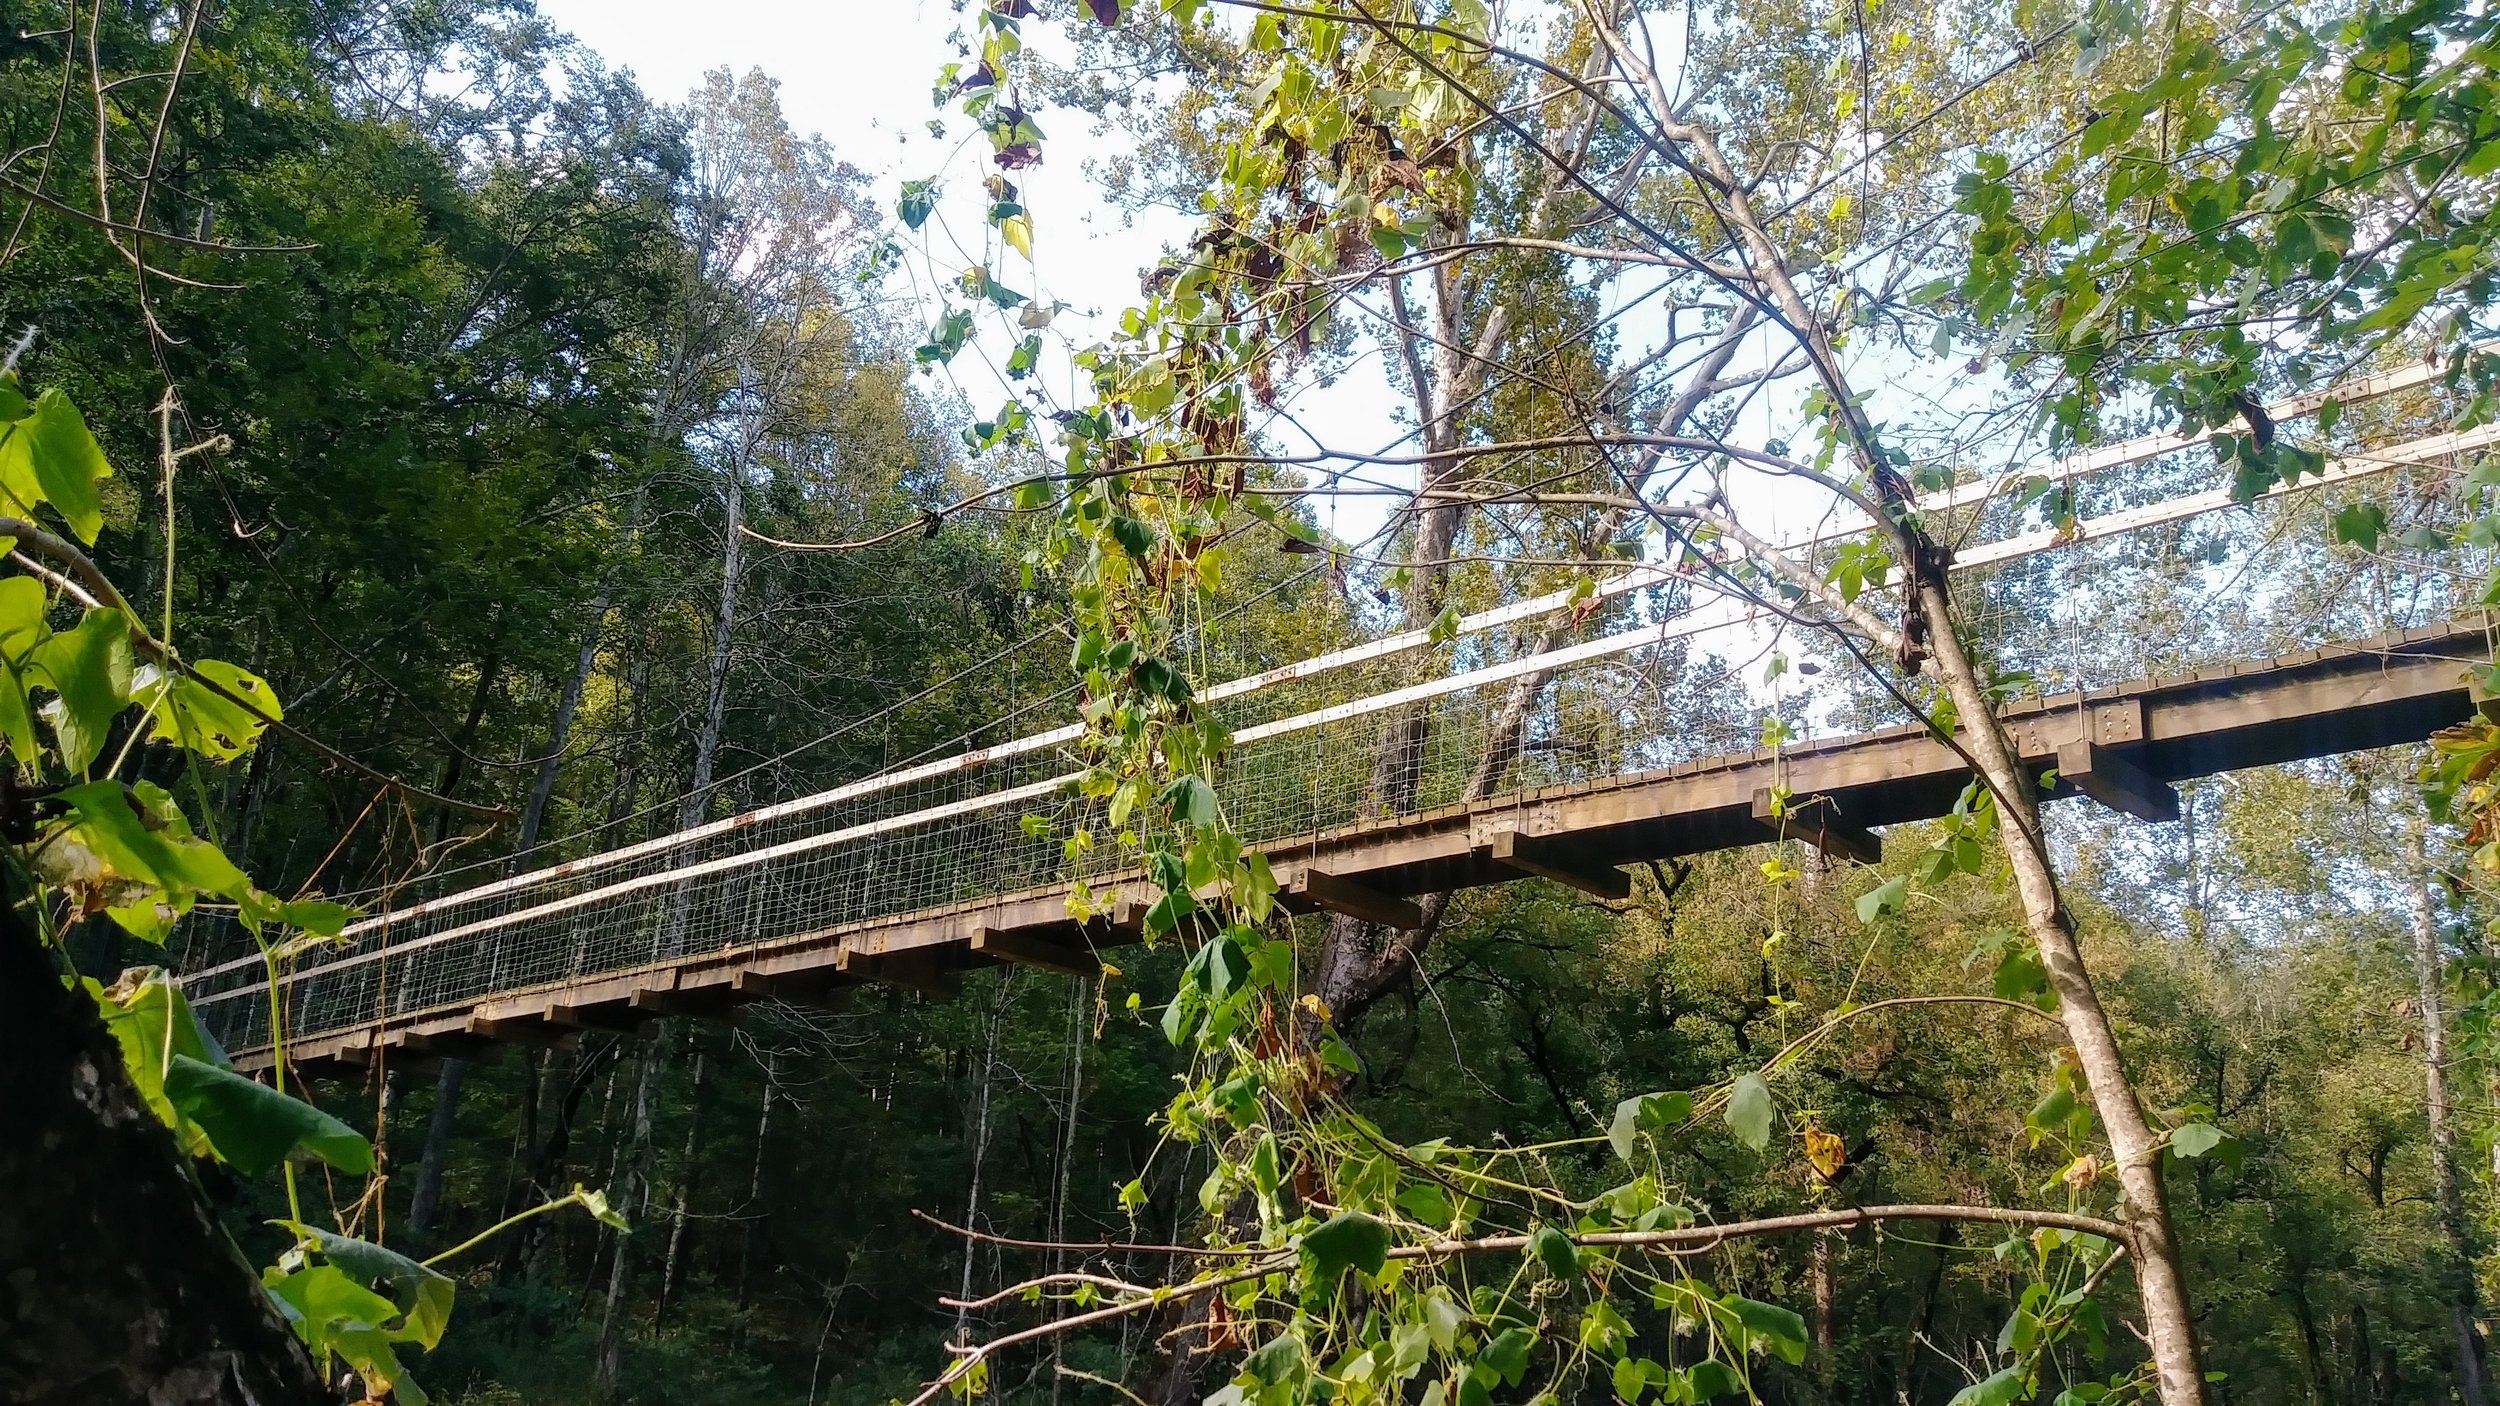 Riverside Jump Rock, Wildflowers, and a Tall Footbridge - Originally built to connect backpackers to Kentucky's Longest Trail, the Sheltowee Trace, this short 2 mile hike is ideal for kids. They can play in Red River, jump off a huge boulder, see wildflowers along the trail, and finally, cross a nice, tall footbridge!